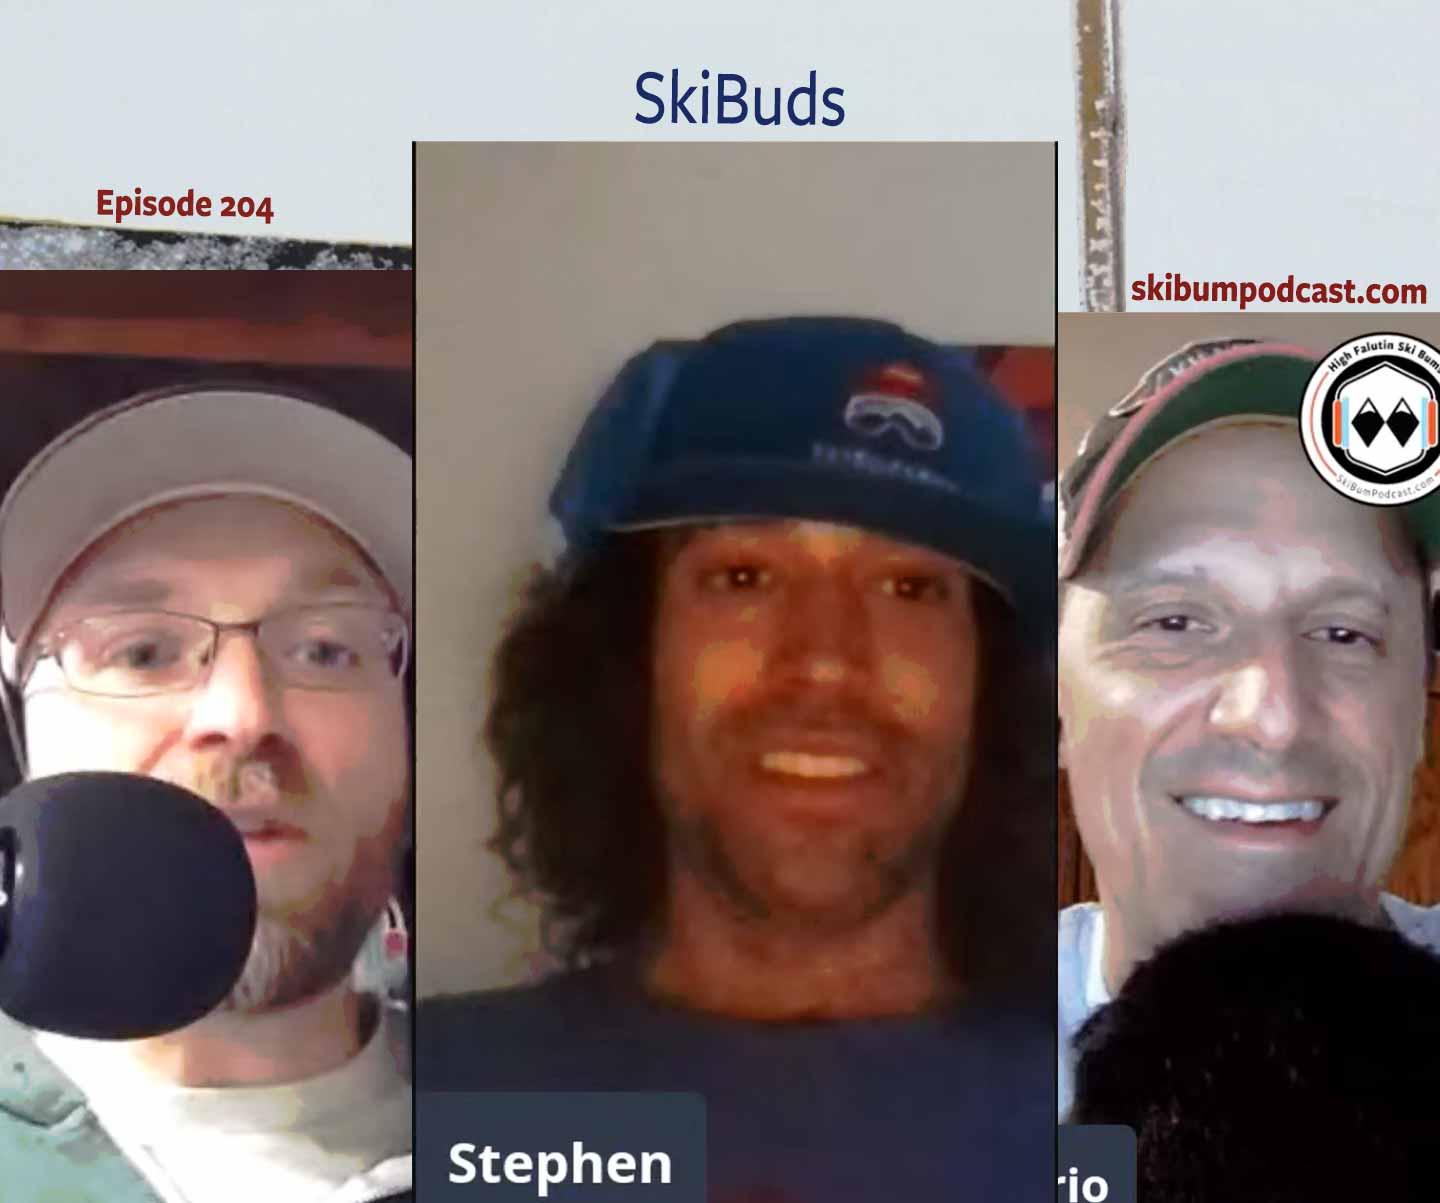 Podcast #204 – SkiBuds